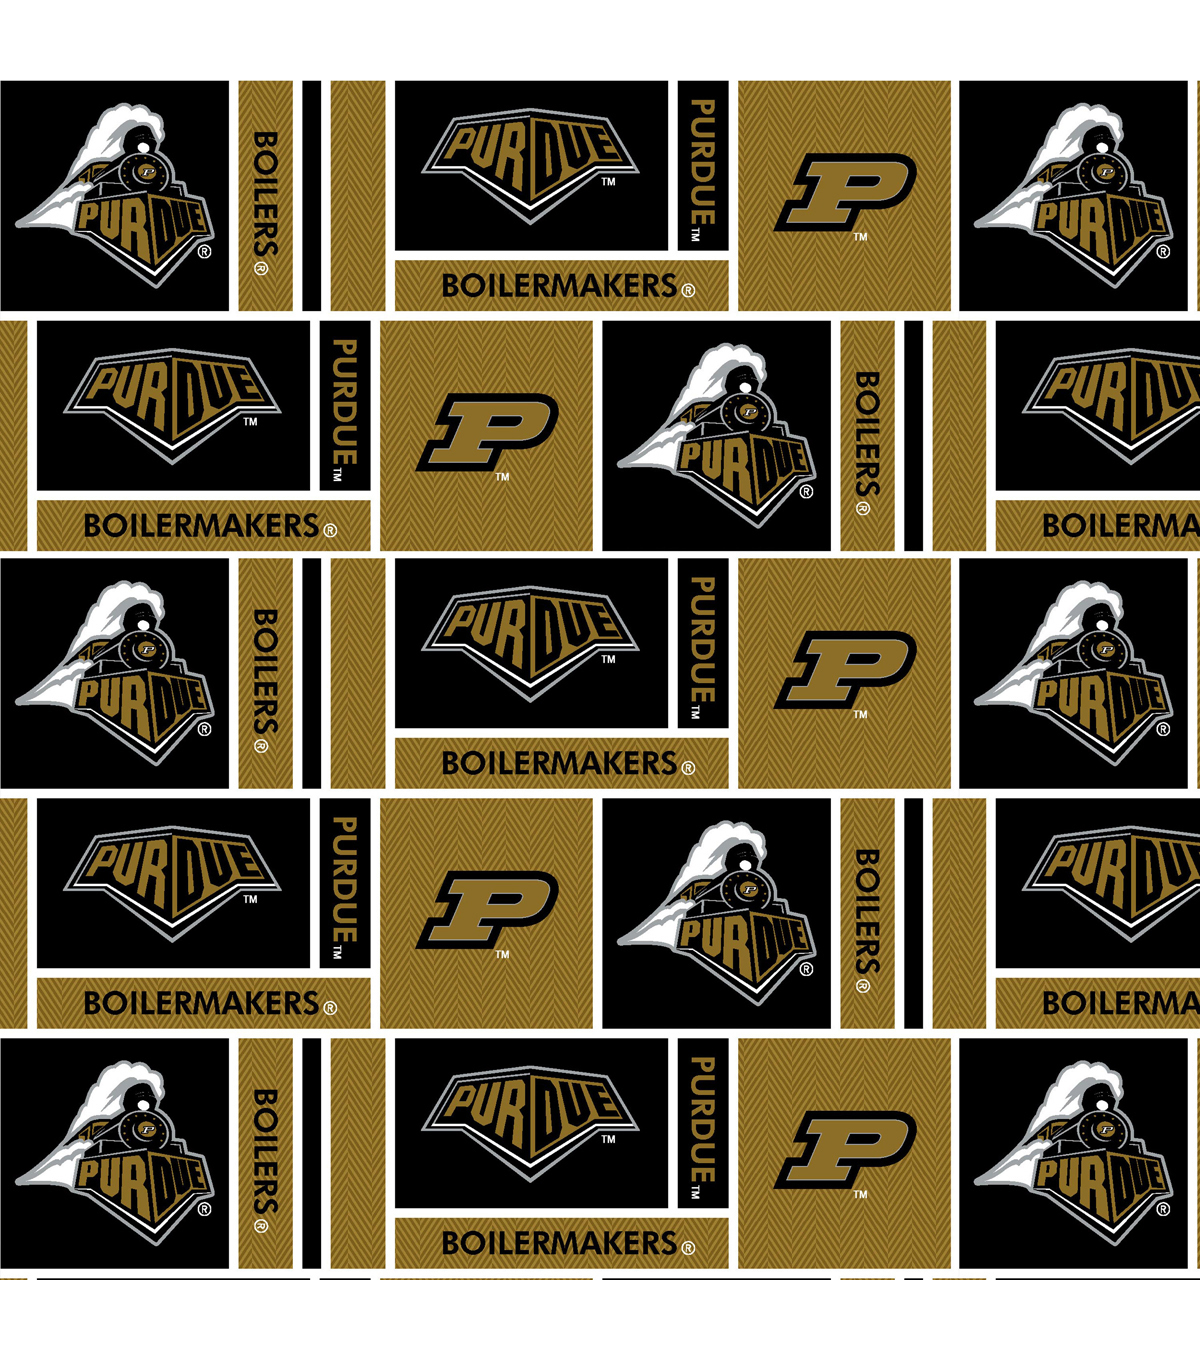 Color printing purdue - Purdue University Boilermakers Cotton Fabric 43 U0022 Herringbone